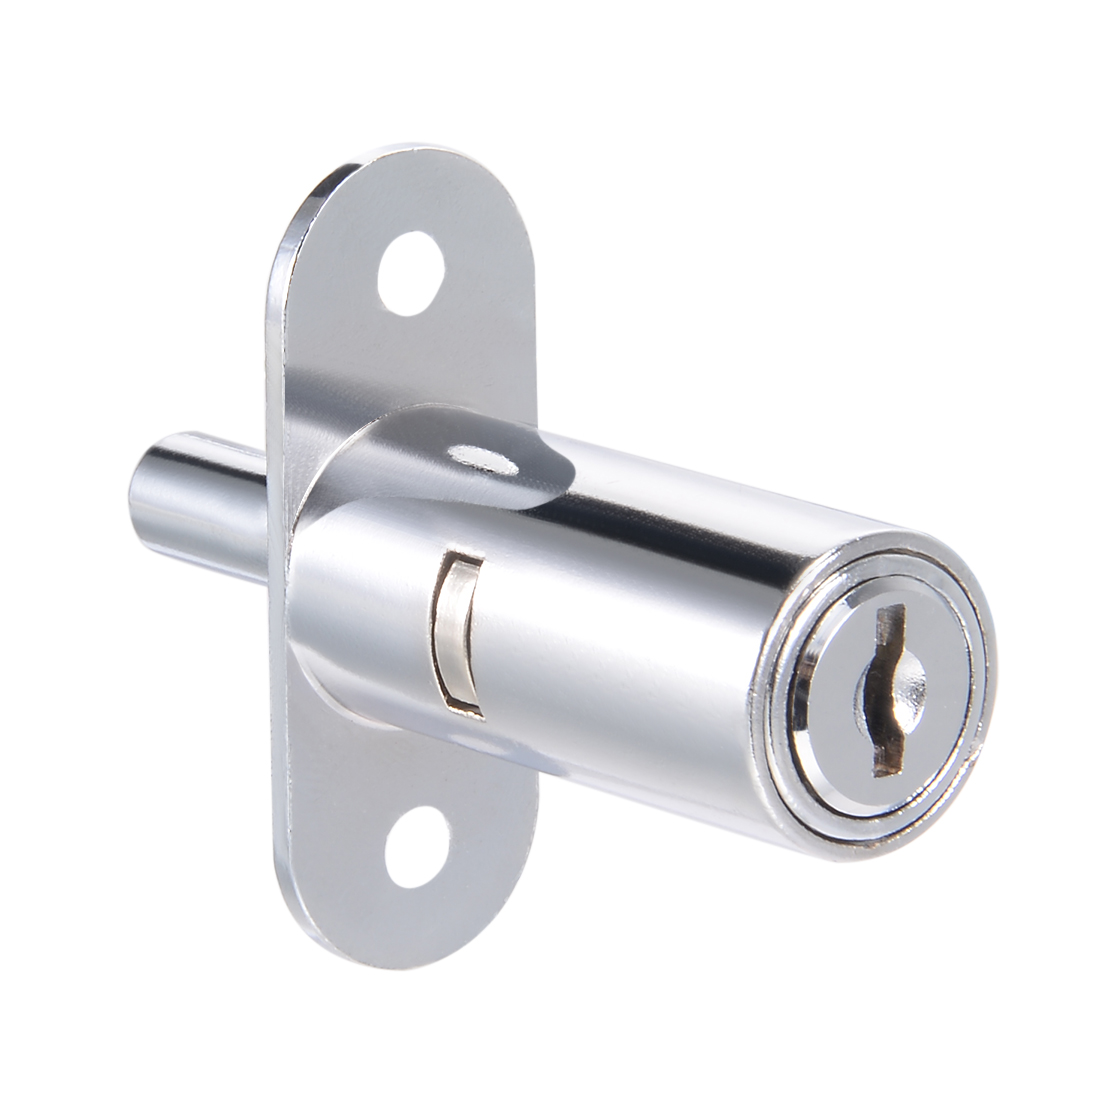 40mmx19mm Cylinder Zinc Alloy Chrome Finish Plunger Lock, Keyed Different